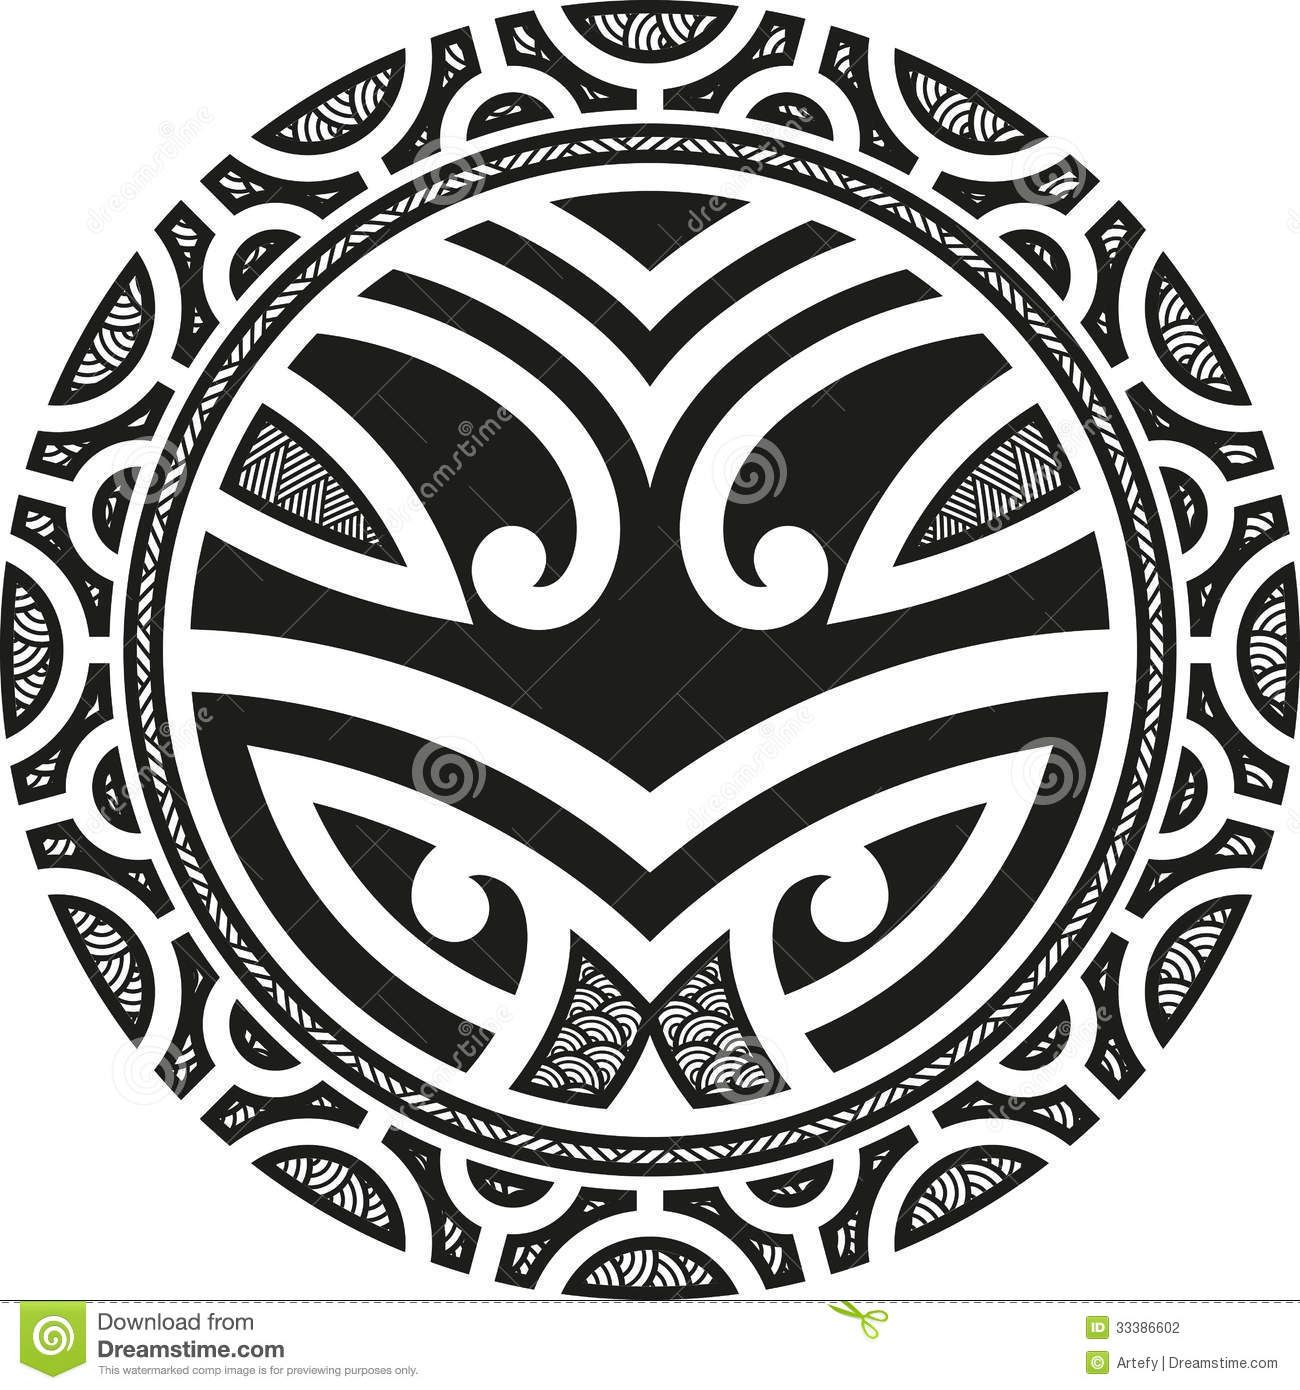 Suficiente Taniwha Circle - Download From Over 62 Million High Quality Stock  EI54